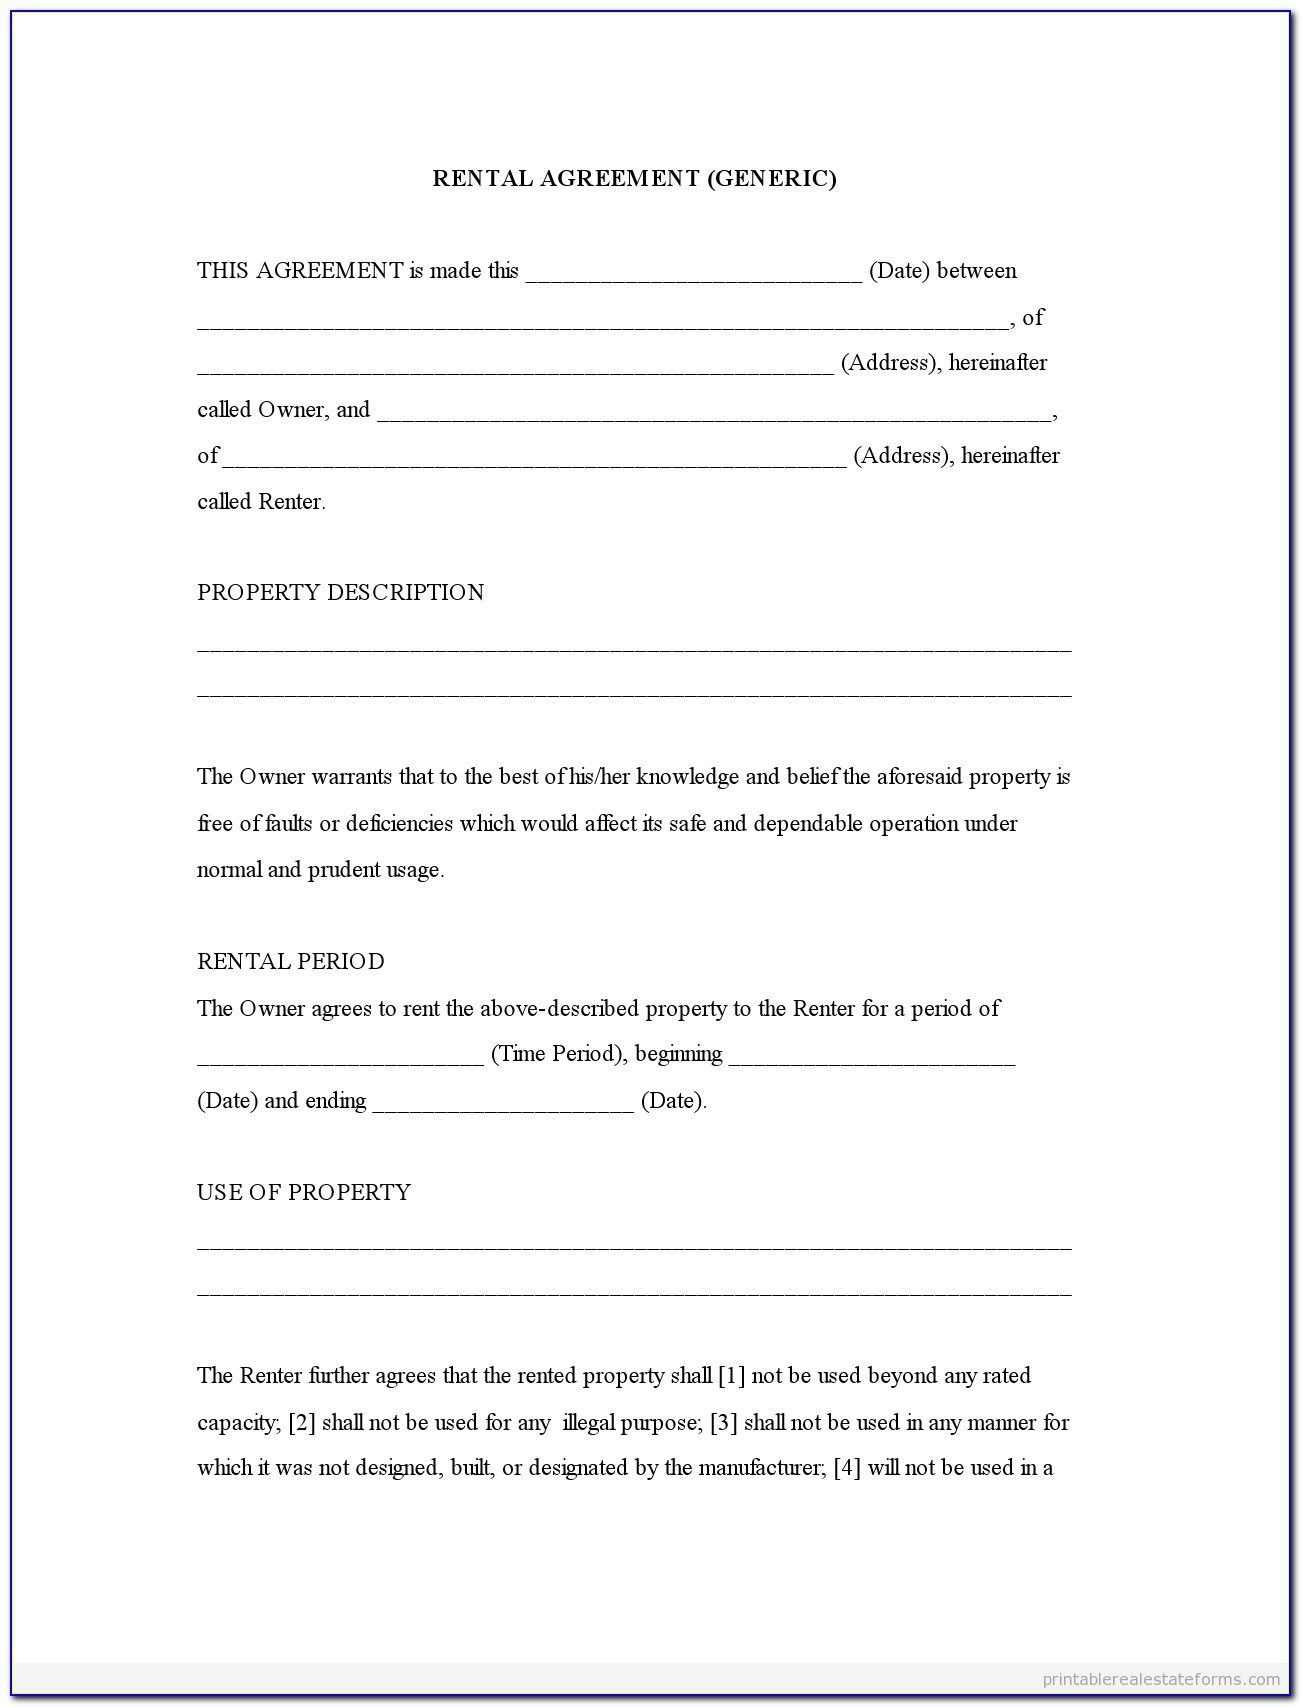 007 Remarkable Rental Agreement Template Word Canada Highest Clarity Full